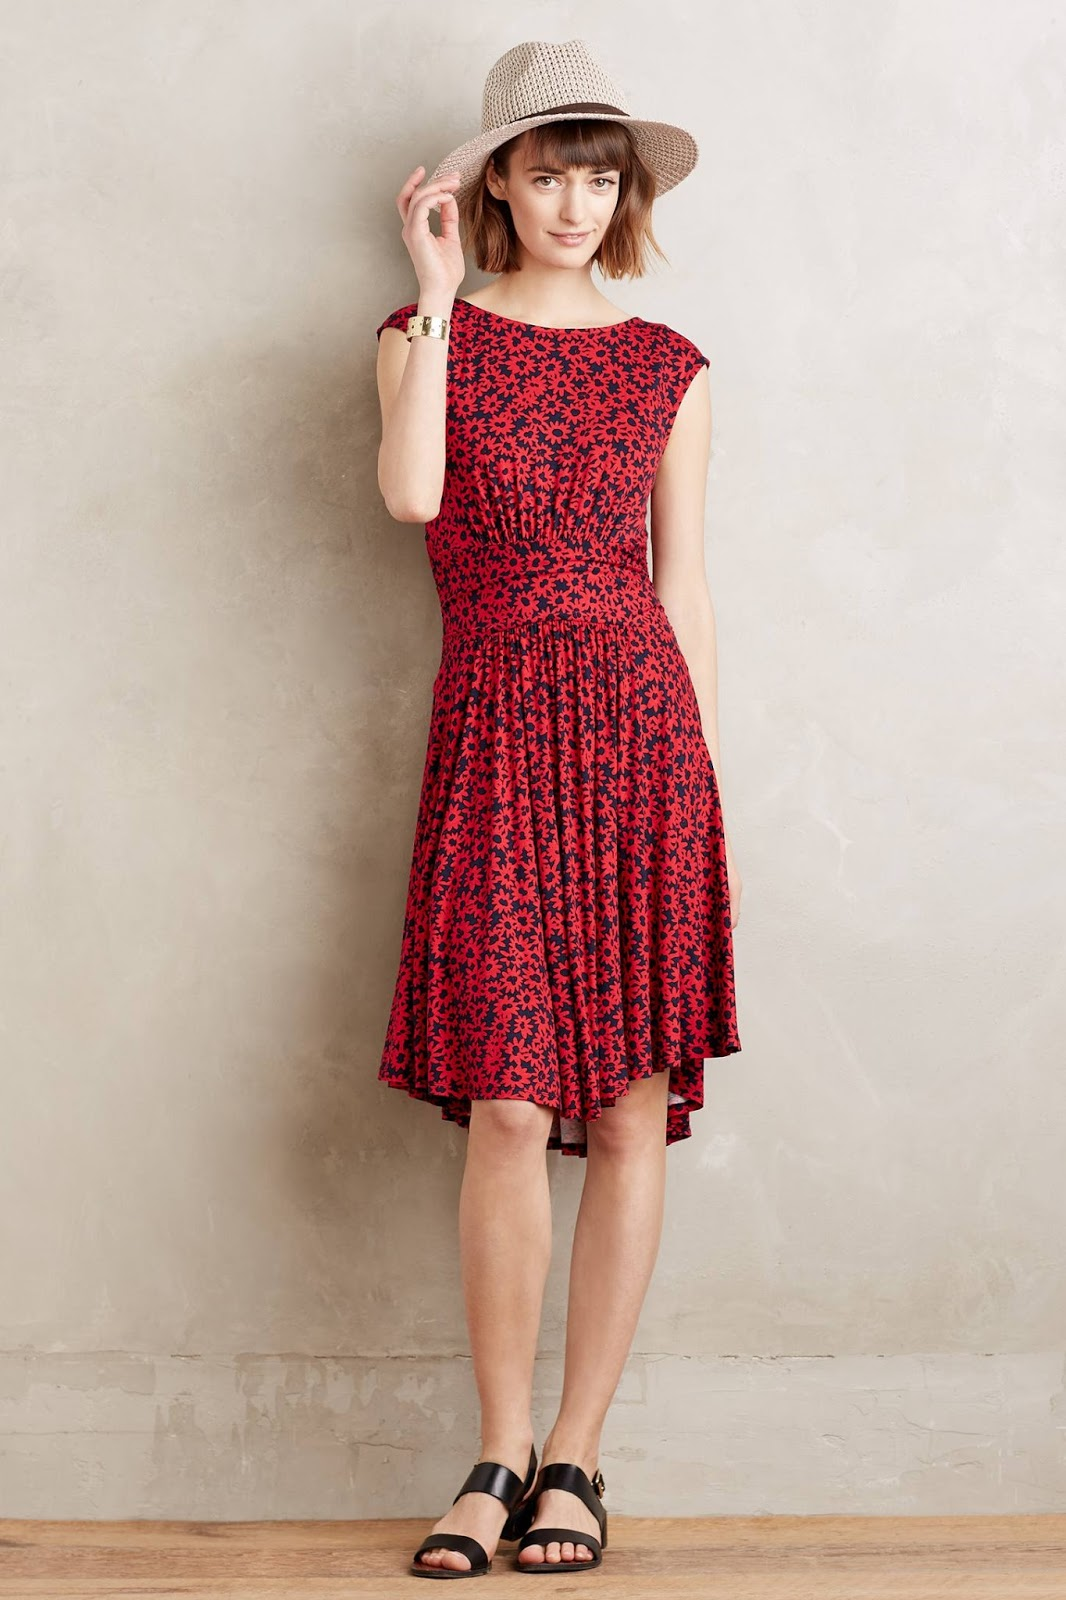 Anthropologie clothing store